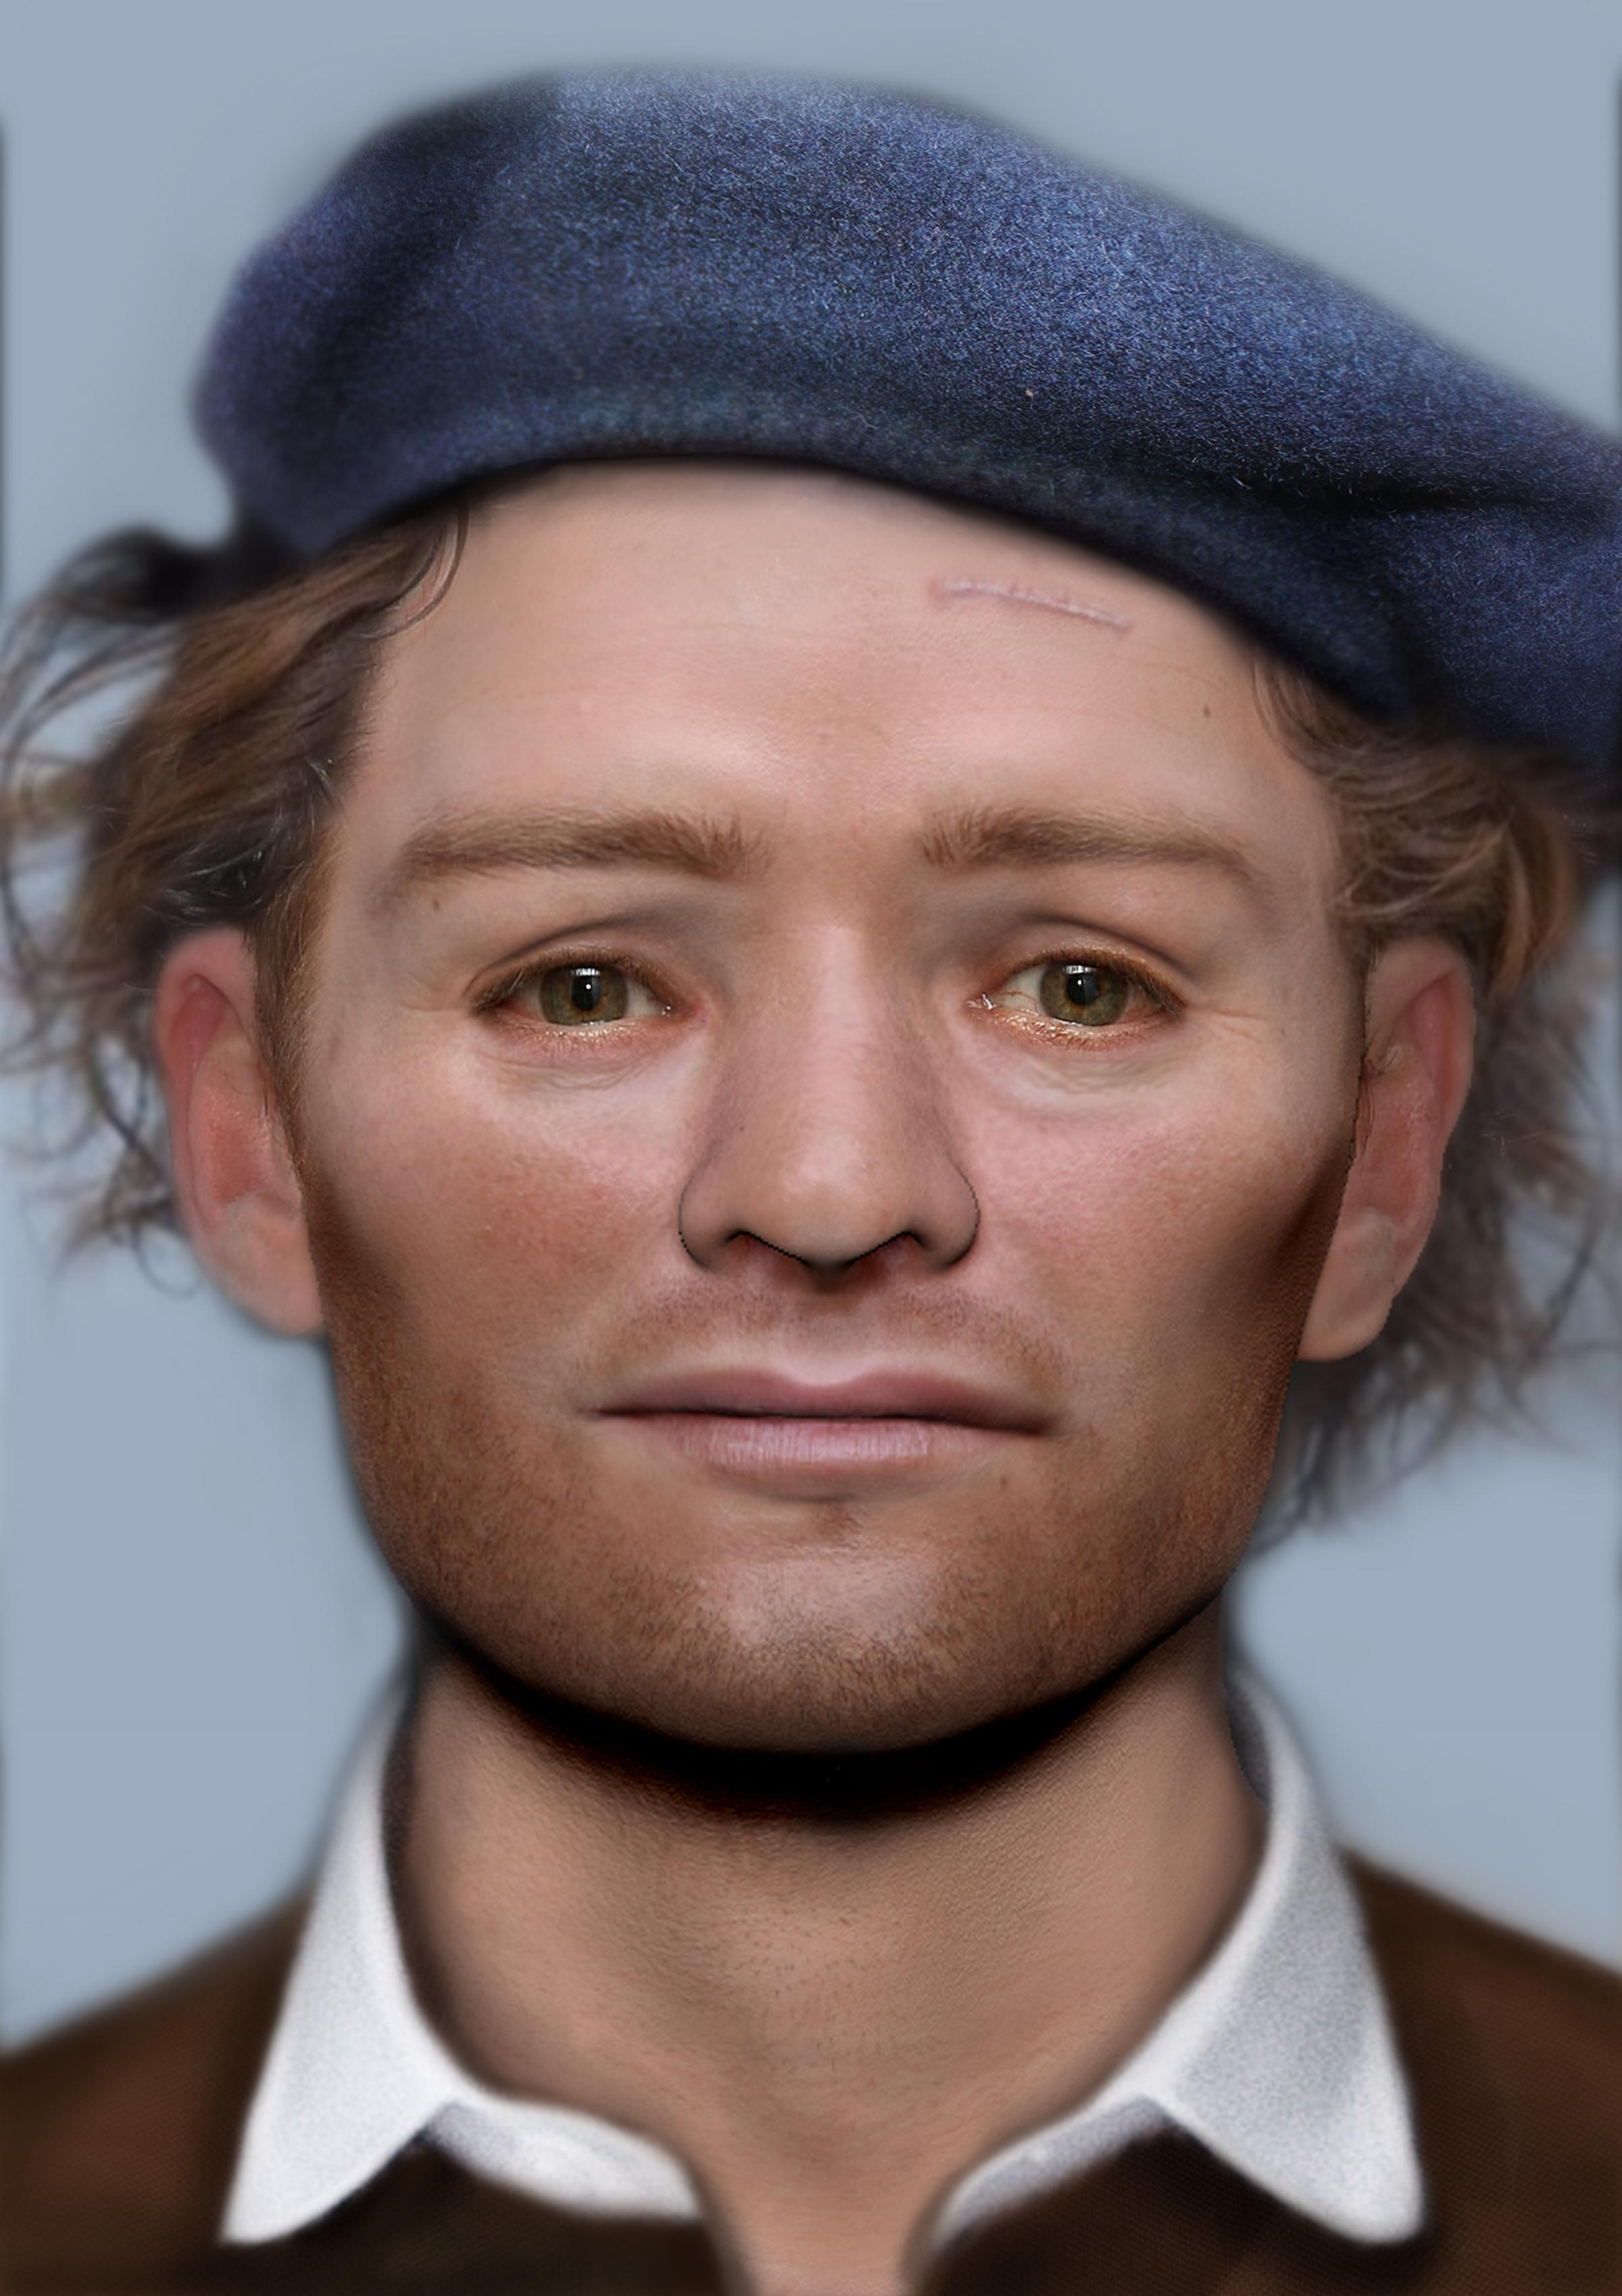 FACE: The face of one of the Scottish soldiers who was imprisoned and died in Durham following the Battle of Dunbar in 1650 Picture: Face Lab LJMU